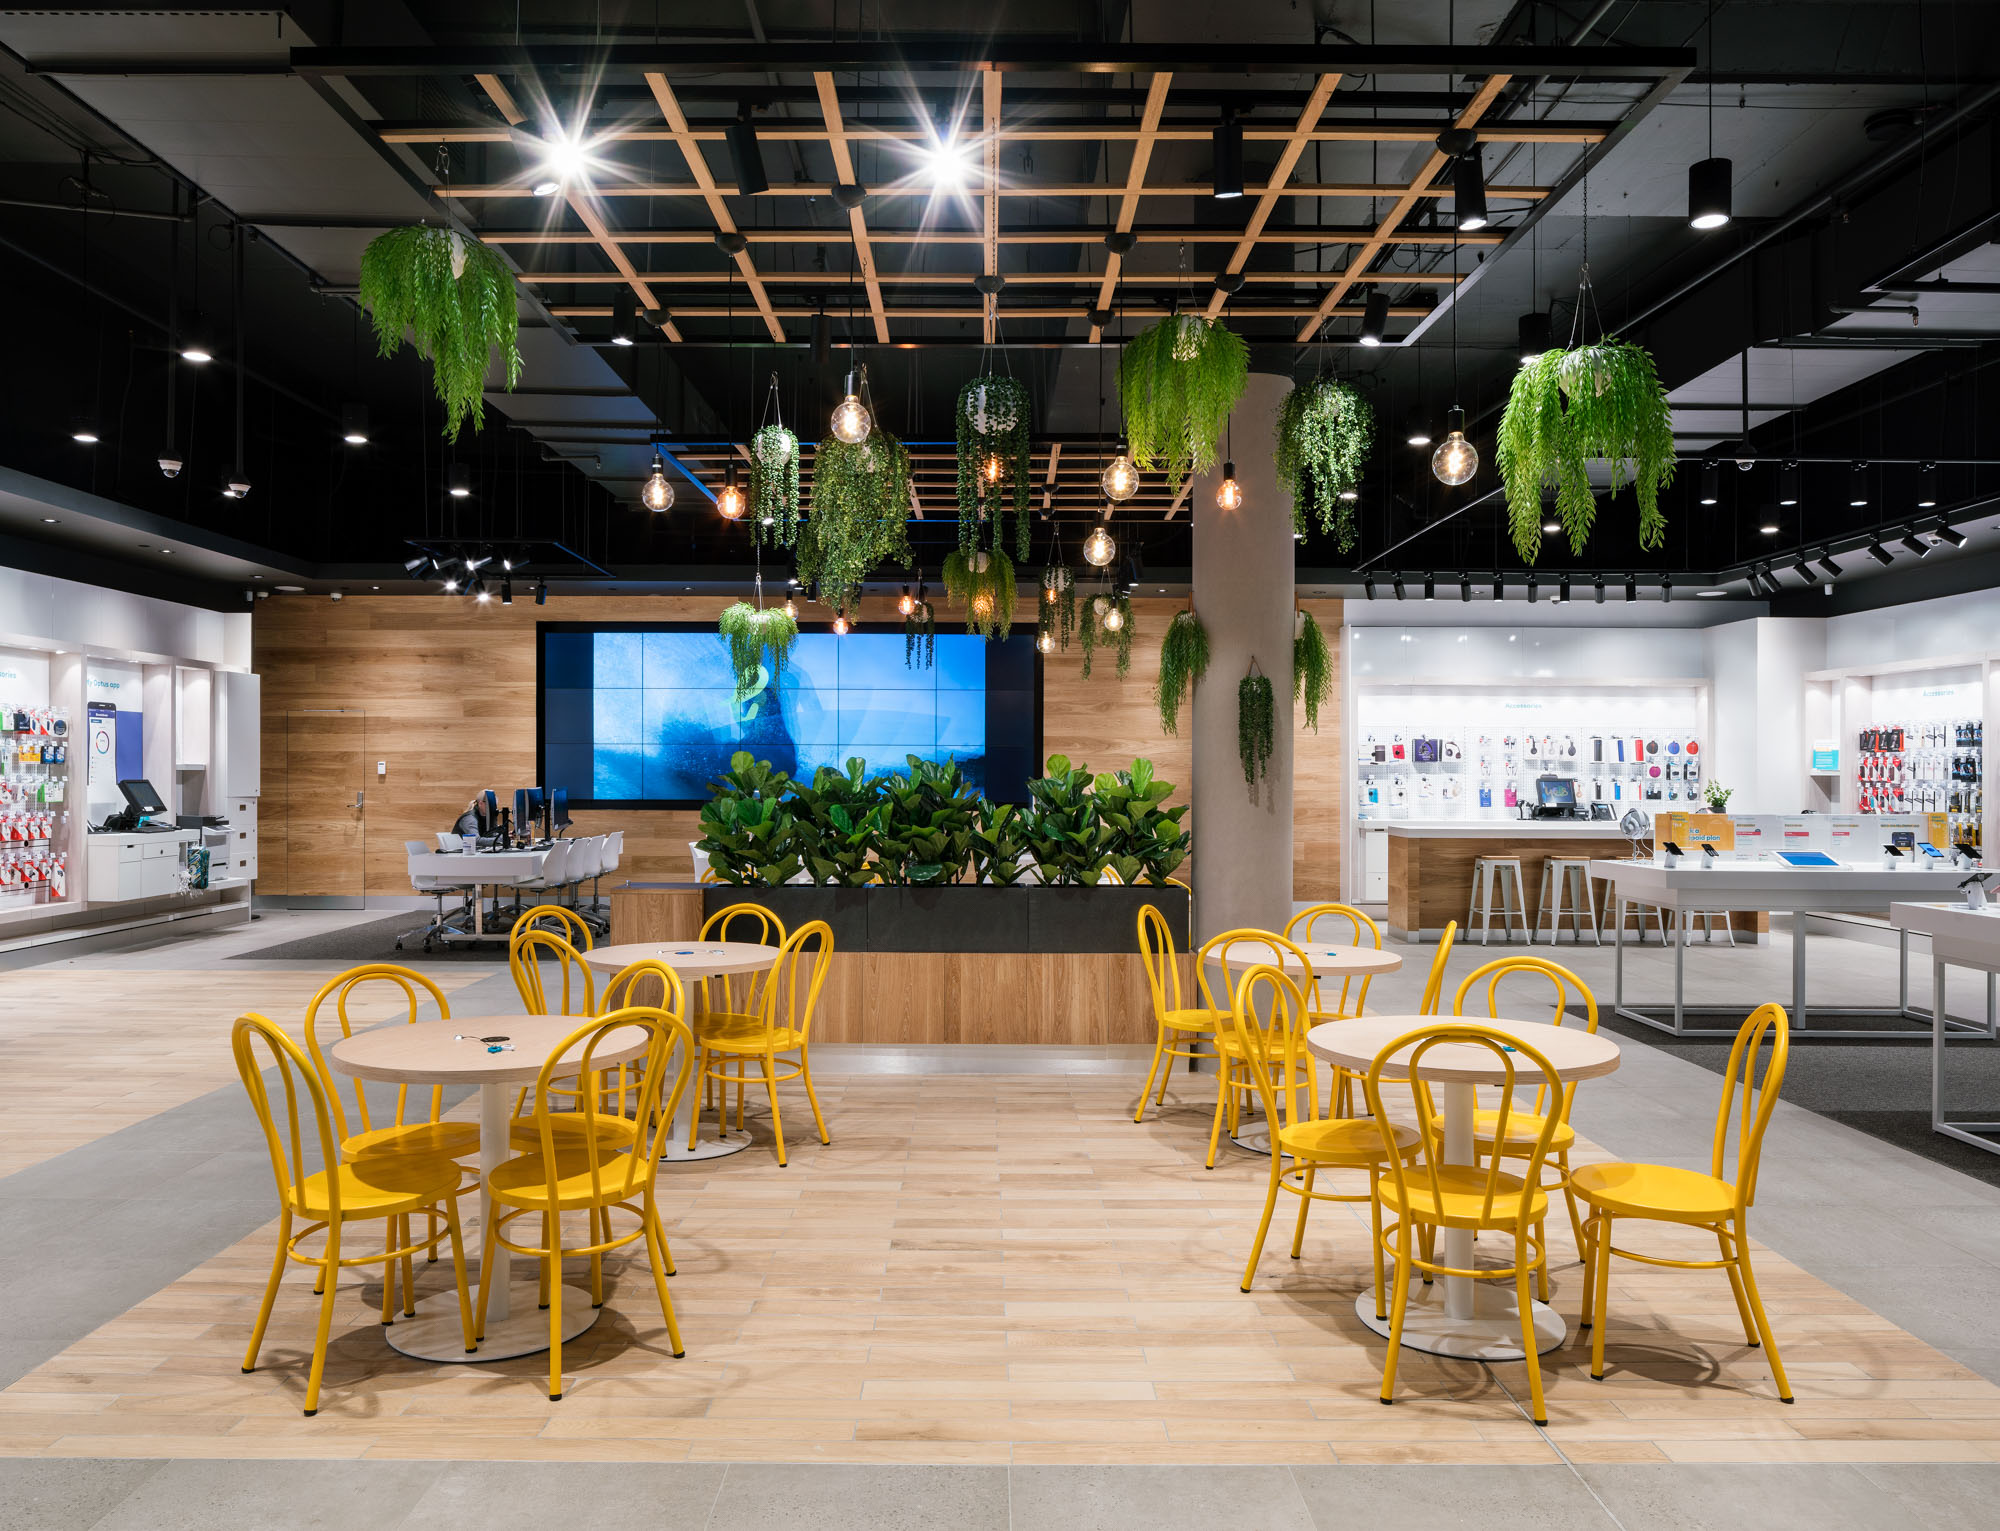 optus chermside  INTERIOR DESIGN, ROLL OUT STRATEGY